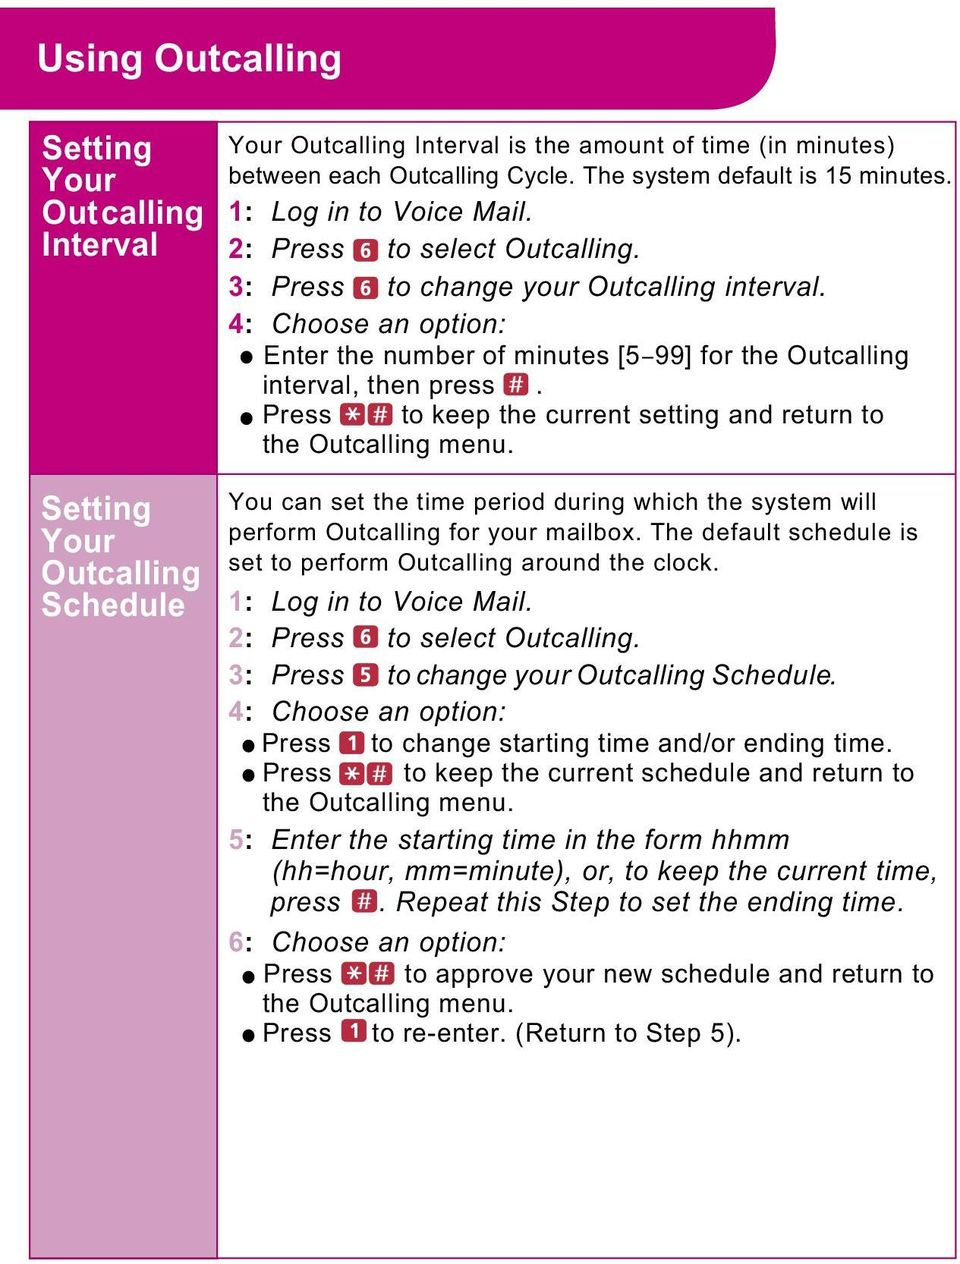 Press to keep the current setting and return to the Outcalling menu. Setting Your Outcalling Schedule You can set the time period during which the system will perform Outcalling for your mailbox.